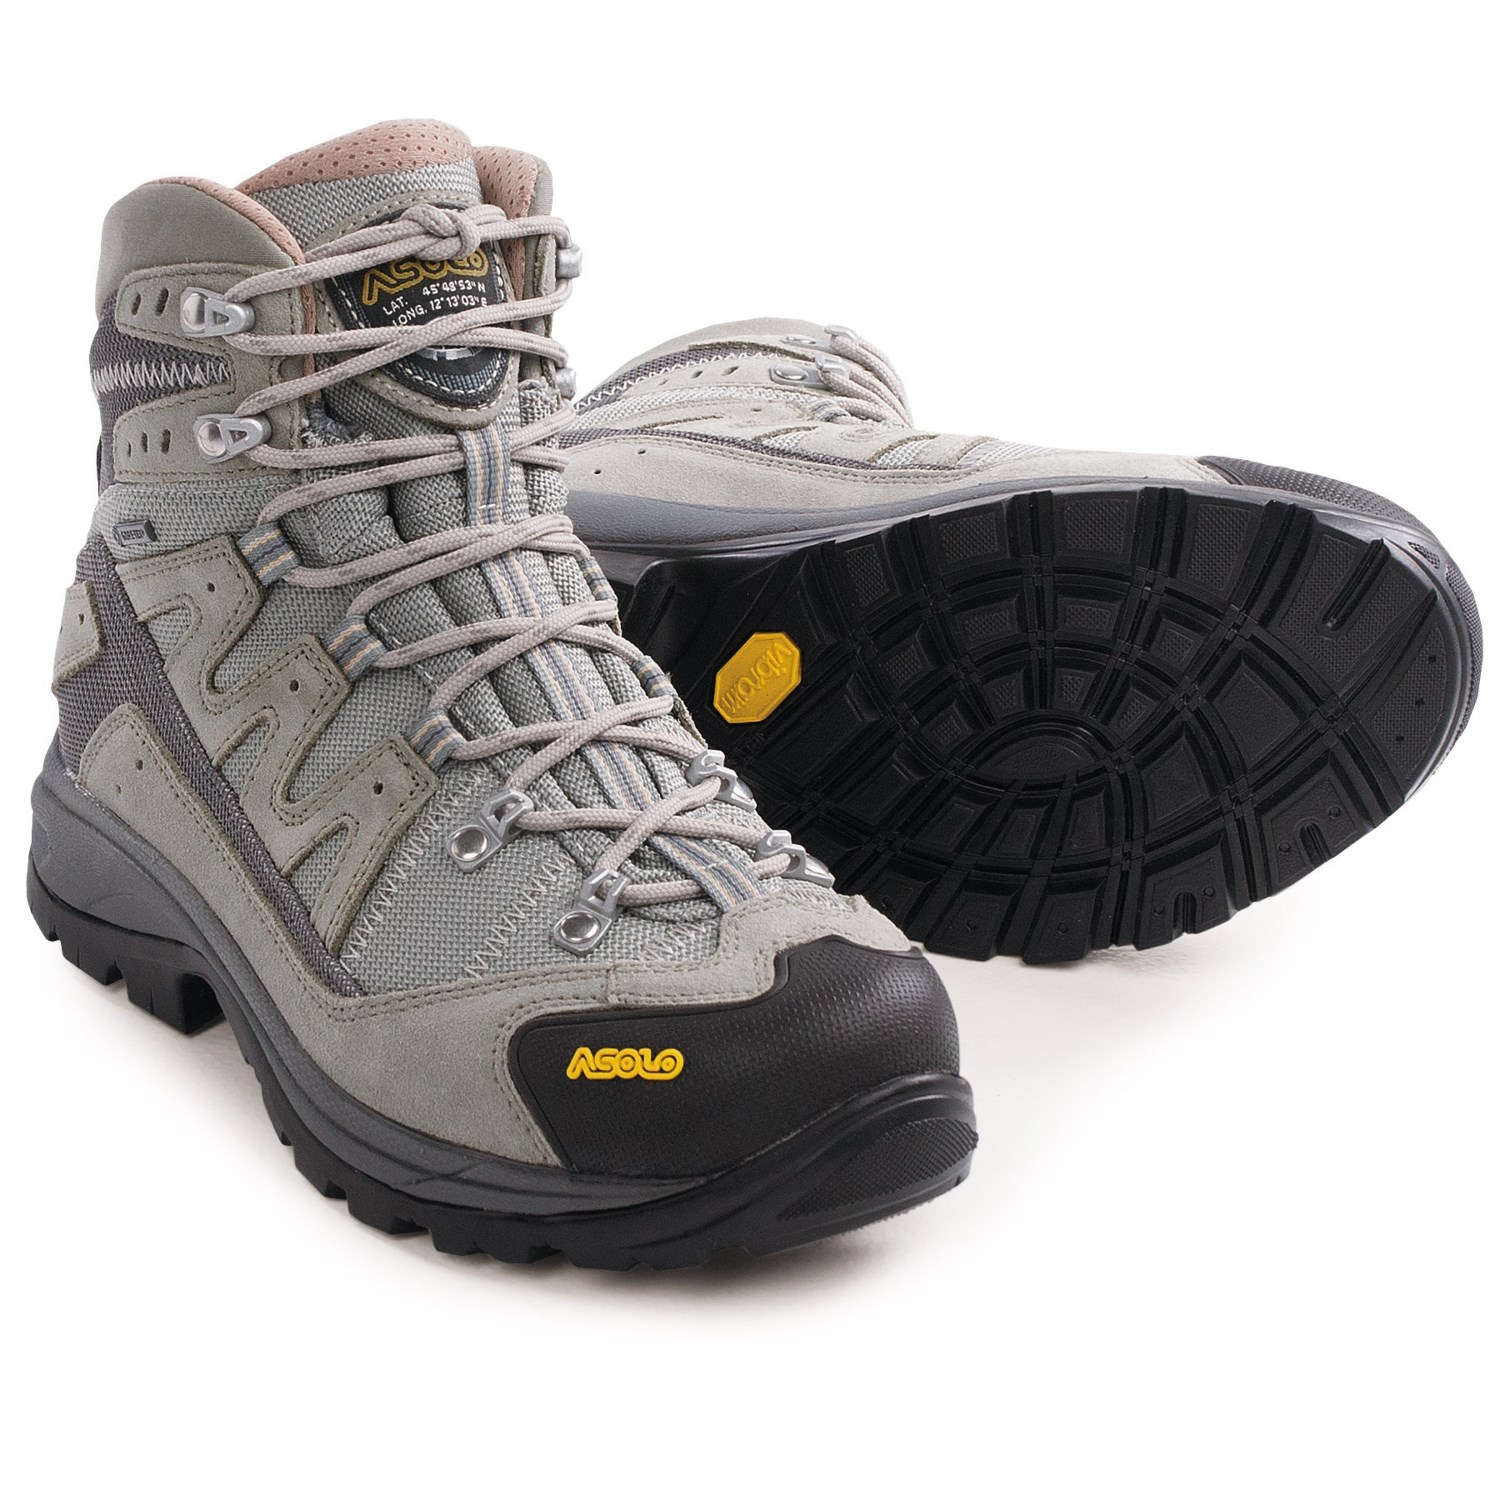 Asolo Neutron Gore-Tex® Hiking Boots (For Women) - Save 42% 8a3bfc45d